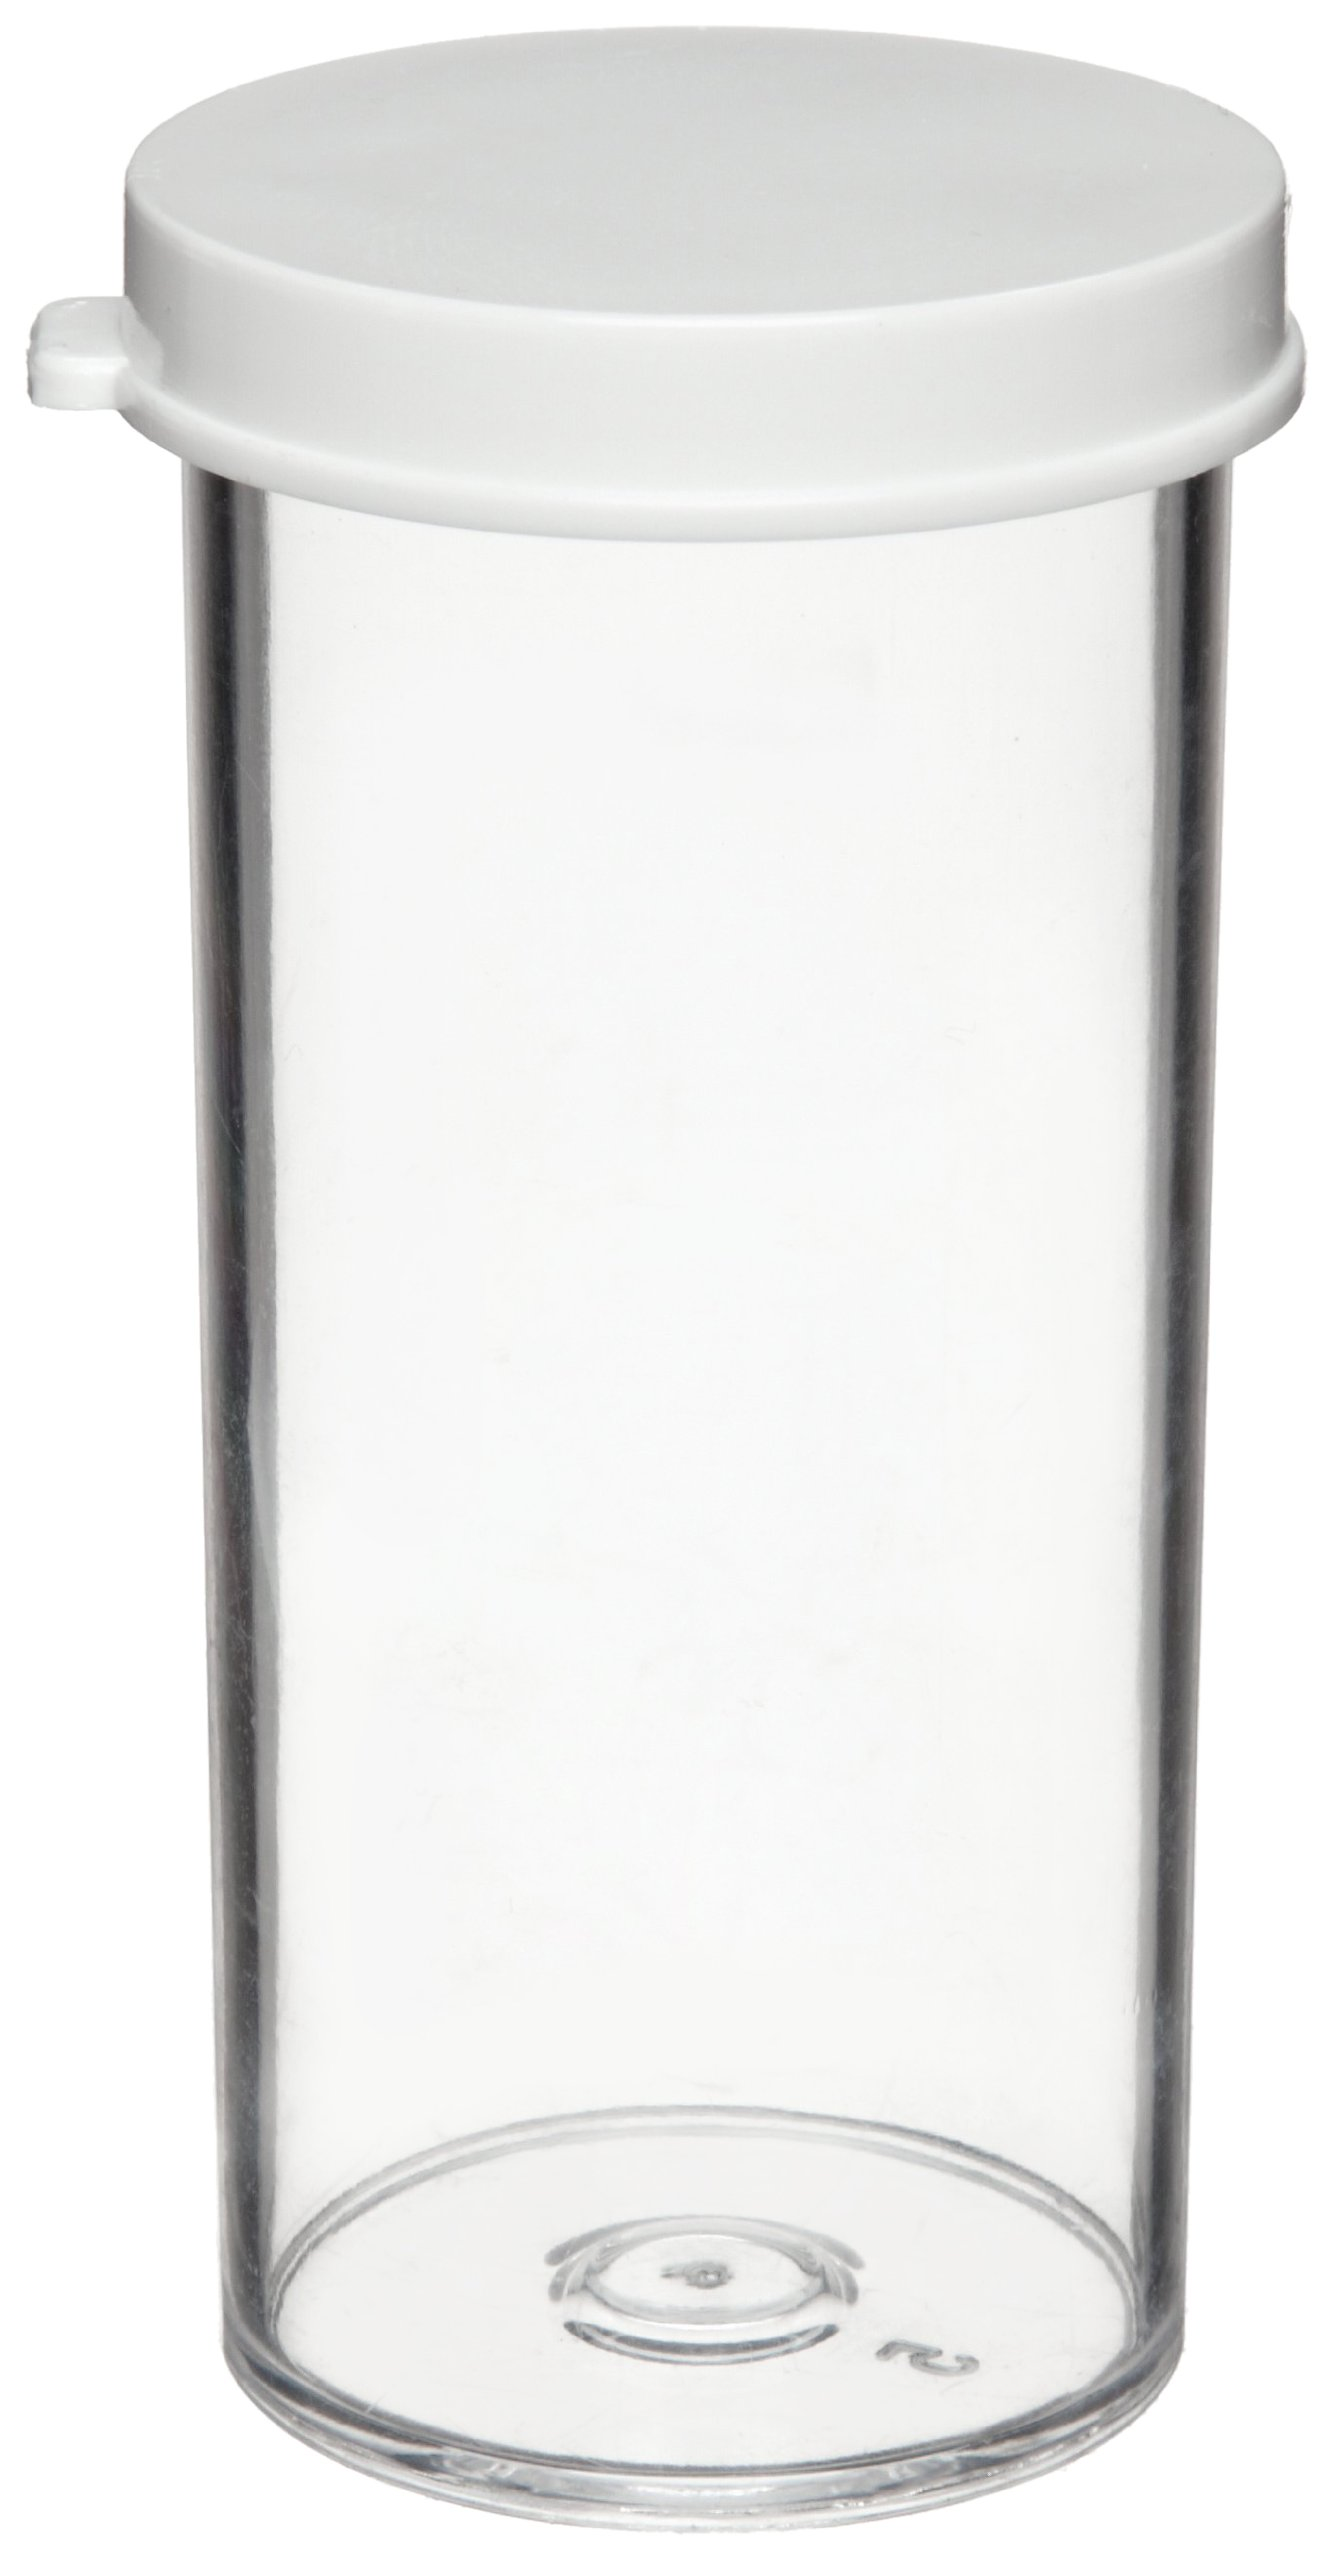 Dynalon 426364-03 Polystyrene Specimen and Sample Container with Polyethylene Snap Cap, 3 Dram Capacity (Case of 144)